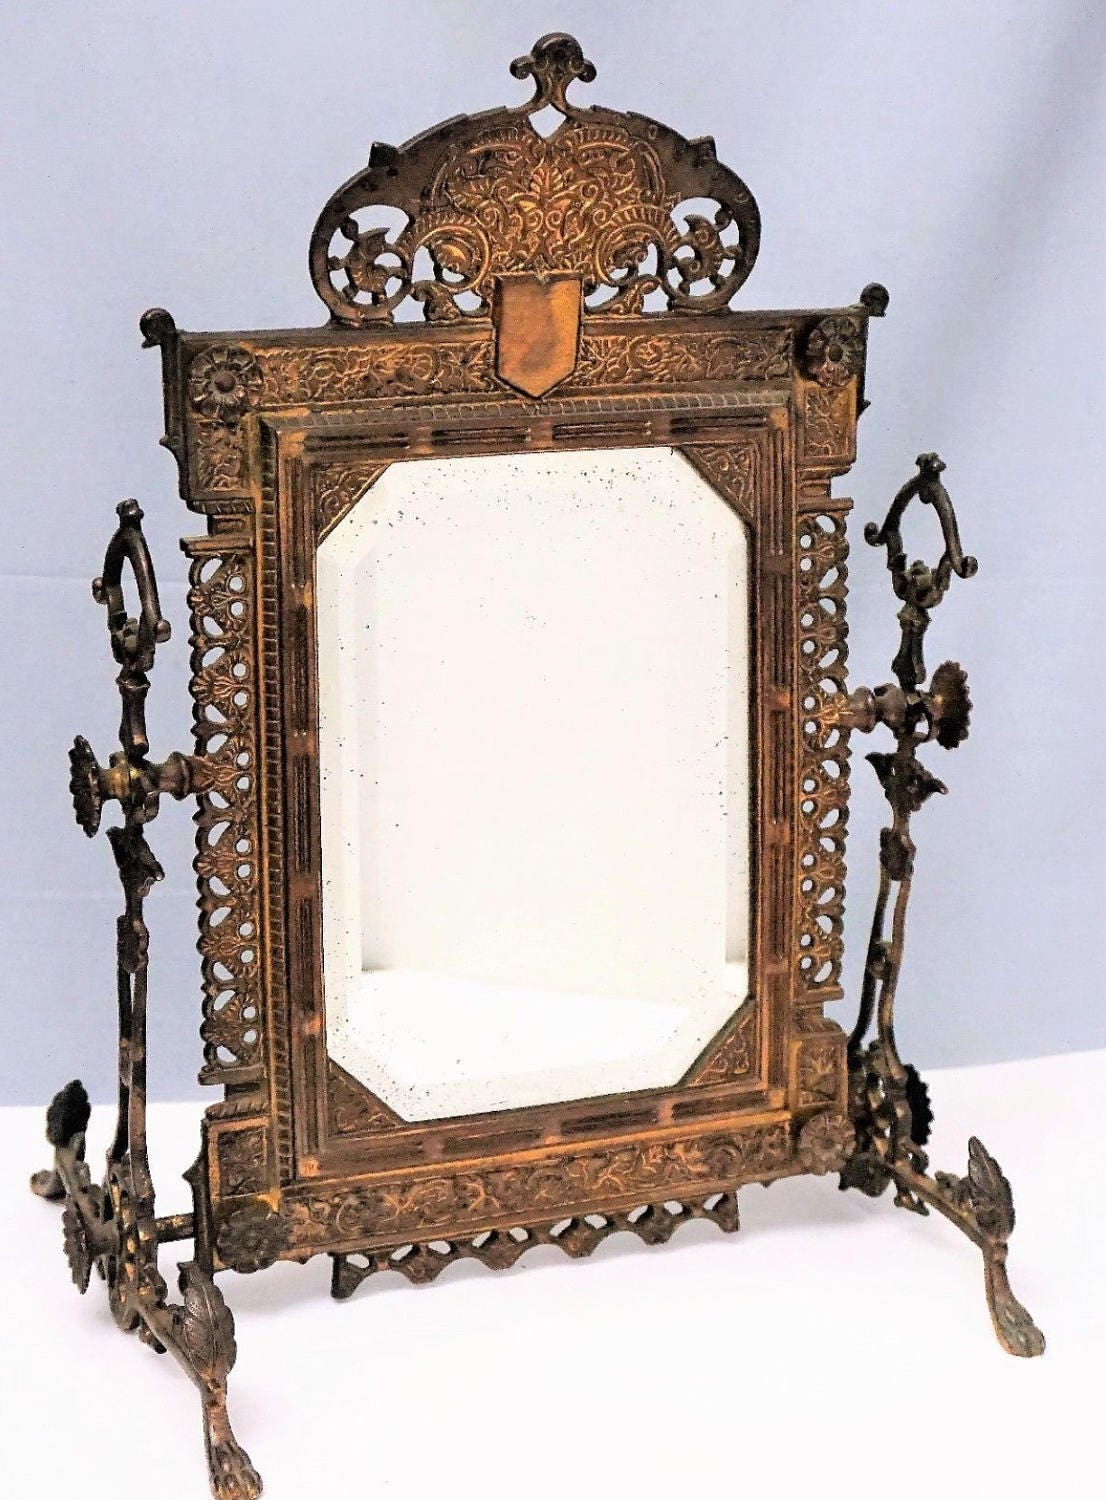 1800's Antique Victorian Brass Eastlake Cheval Vanity Mirror Aesthetic  Movement - 1800's Antique Victorian Brass Eastlake Cheval Vanity Mirror